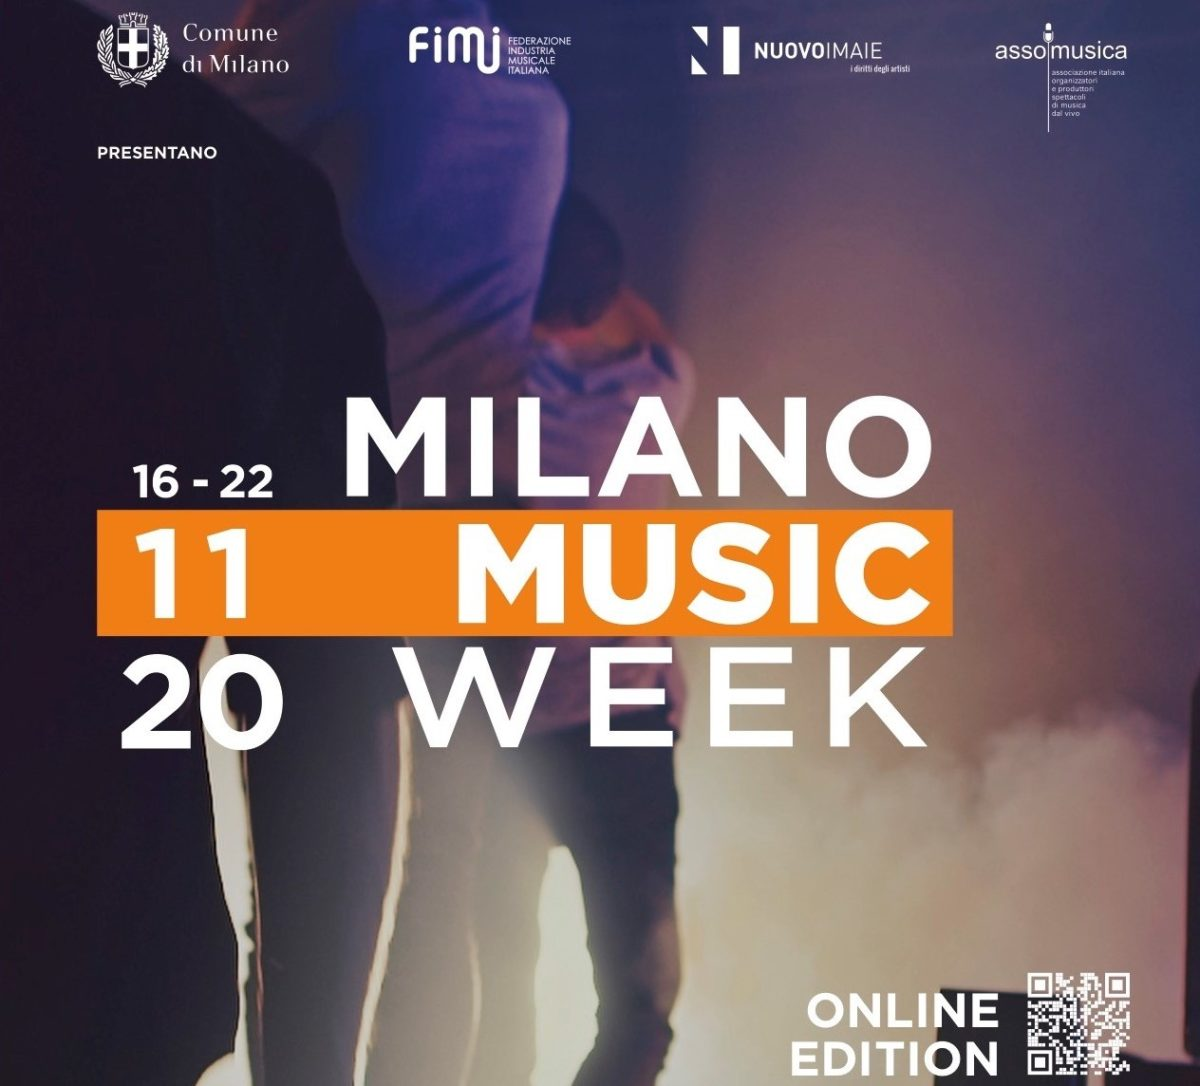 Milano Music Week 2020 - Online Edition